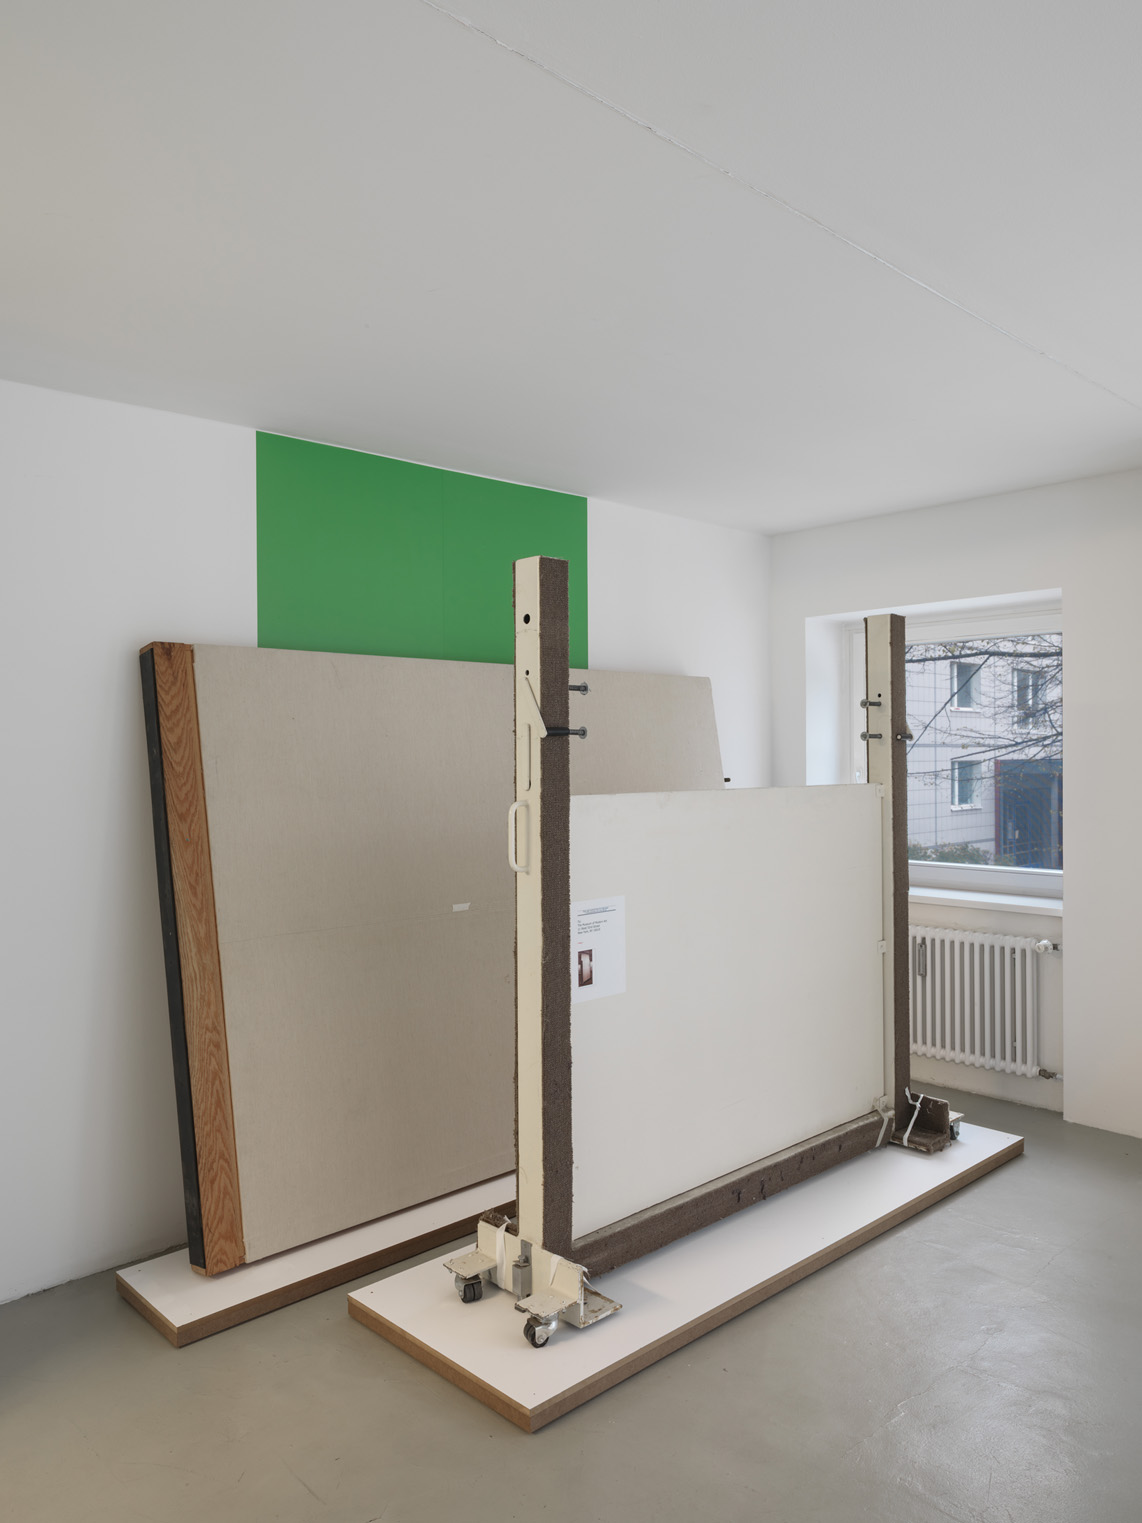 Williams_Installation-view_21